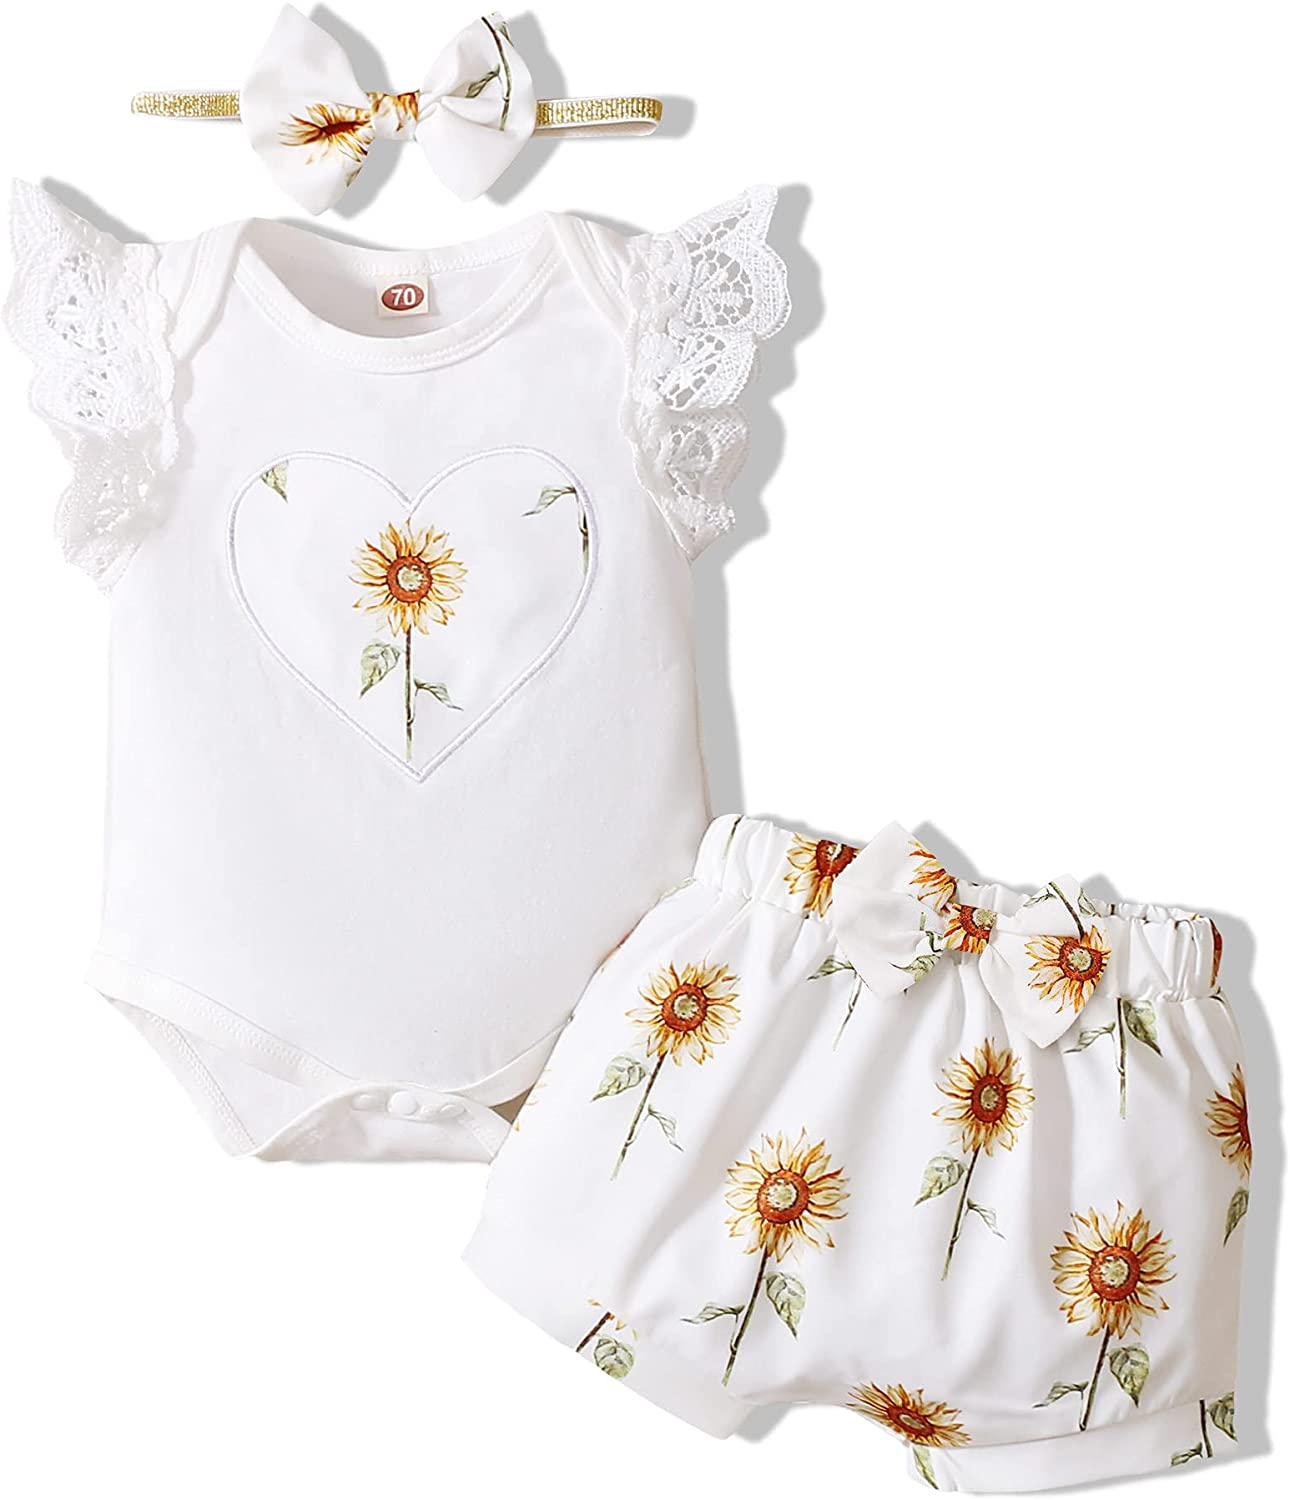 Newborn Baby Girl Clothes Infant Romper Shorts Set Cute Summer Outfits Floral Baby Clothes for Girl